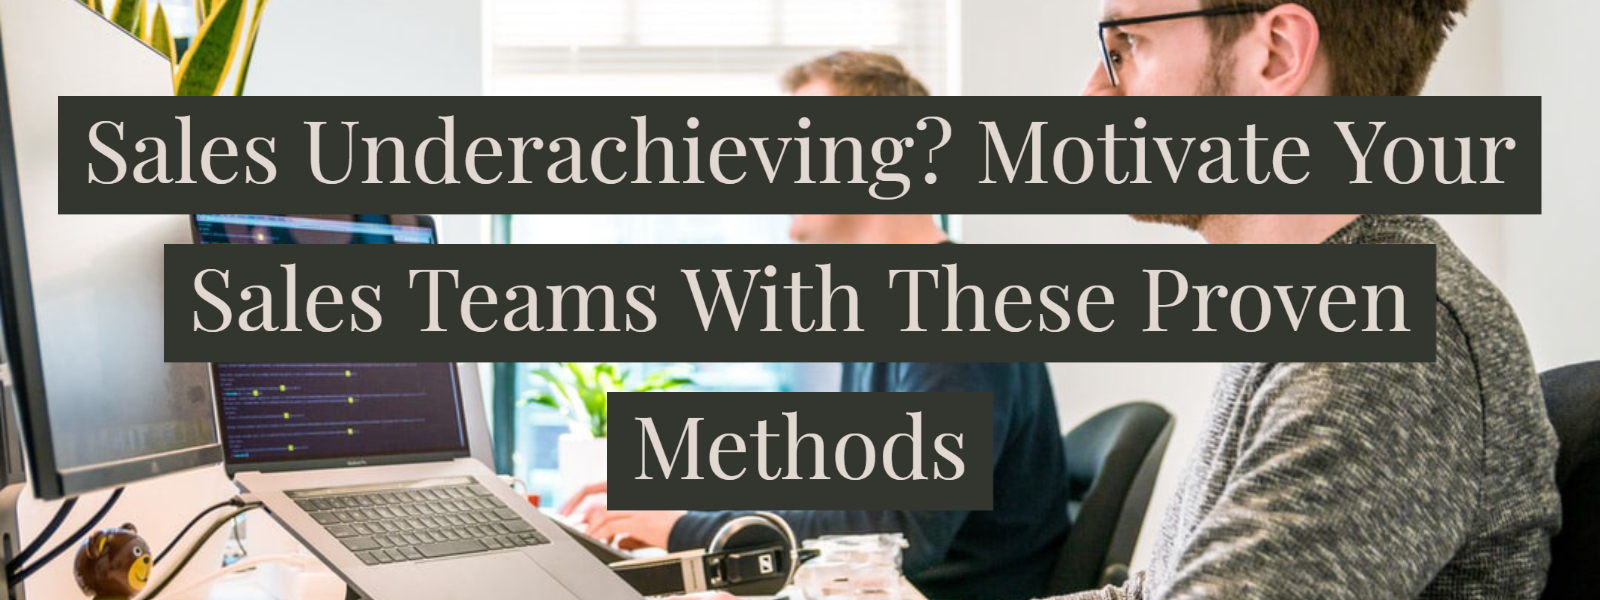 Sales Underachieving? Motivate Your Sales Teams With These Proven Methods